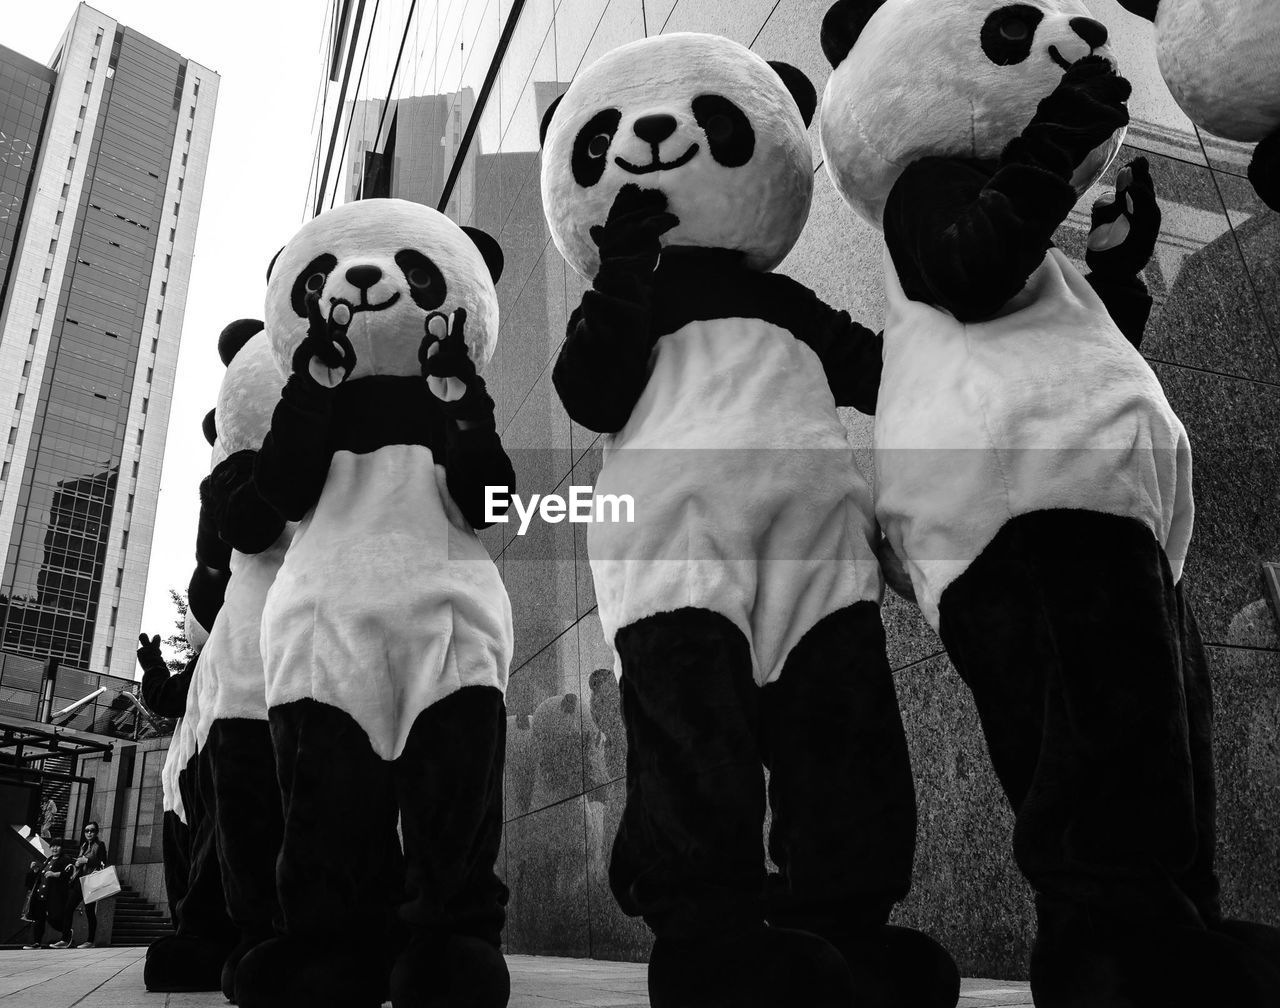 Low Angle View Of People Wearing Panda Costume Standing On Street